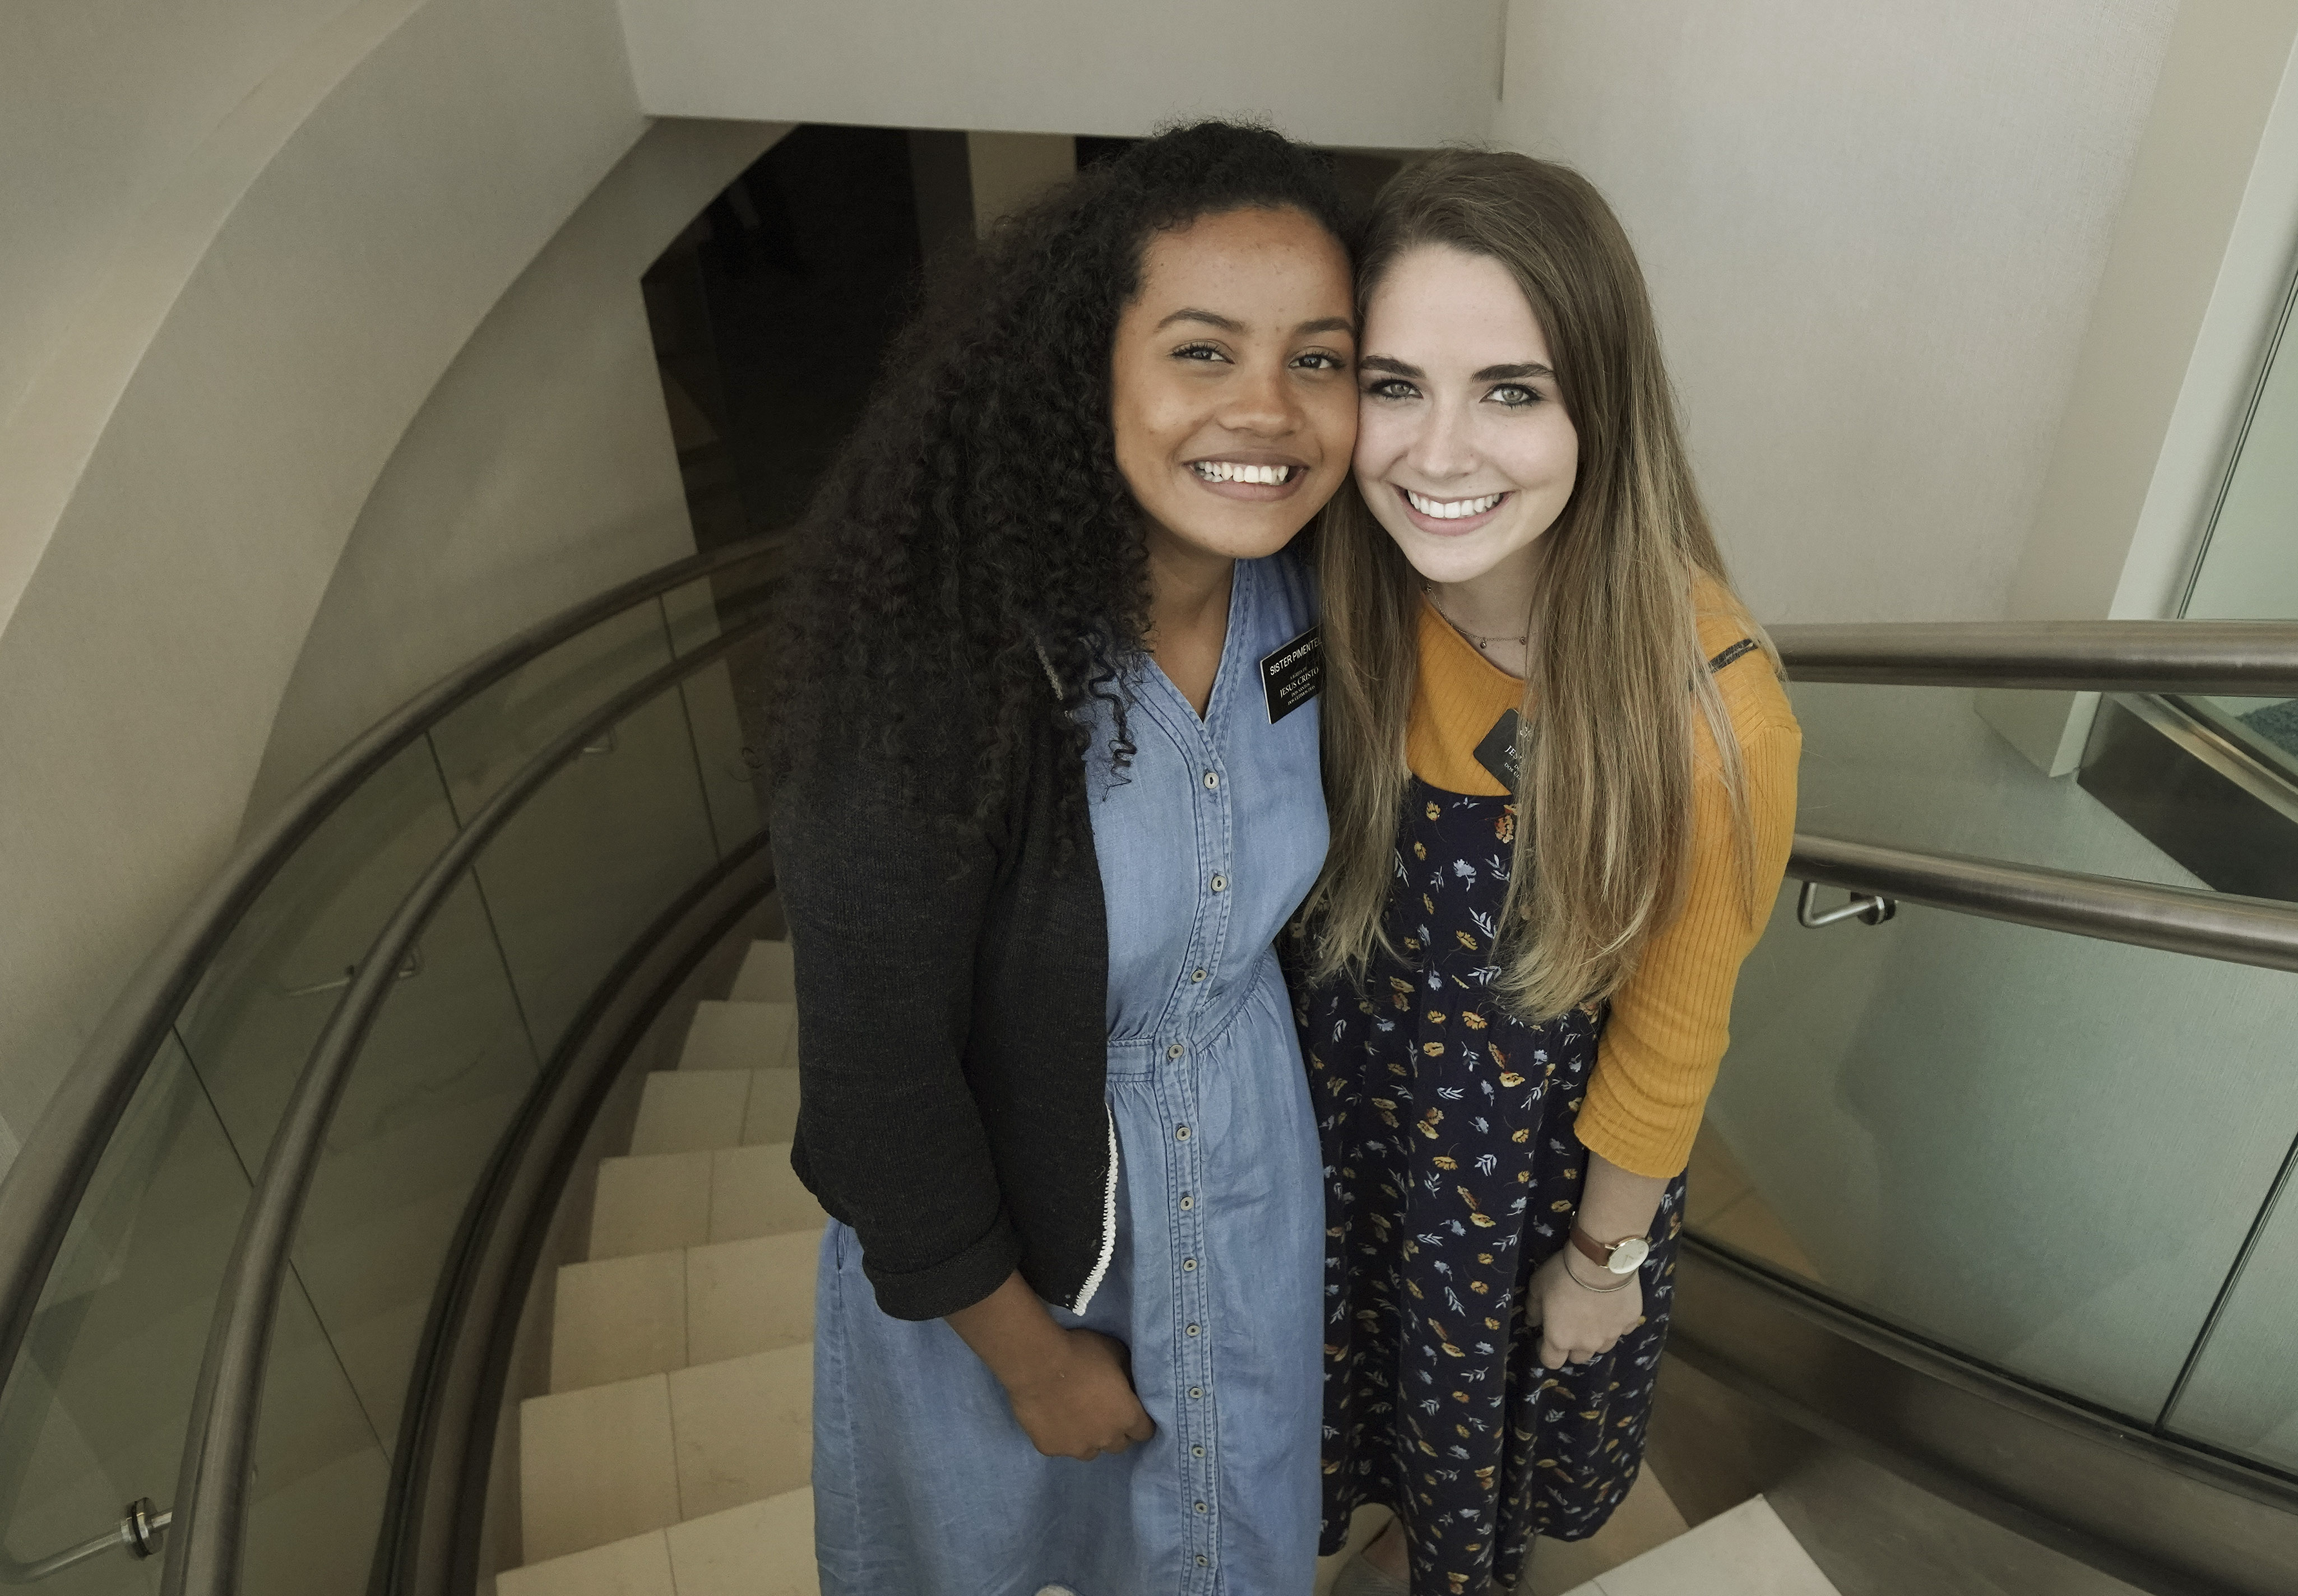 Sister Kethyllen Pimentel and Sister Whitney Hogge pose in the Sao Paulo Brazil Temple Visitors' Center in Sao Paulo, Brazil, on Aug. 31, 2019.